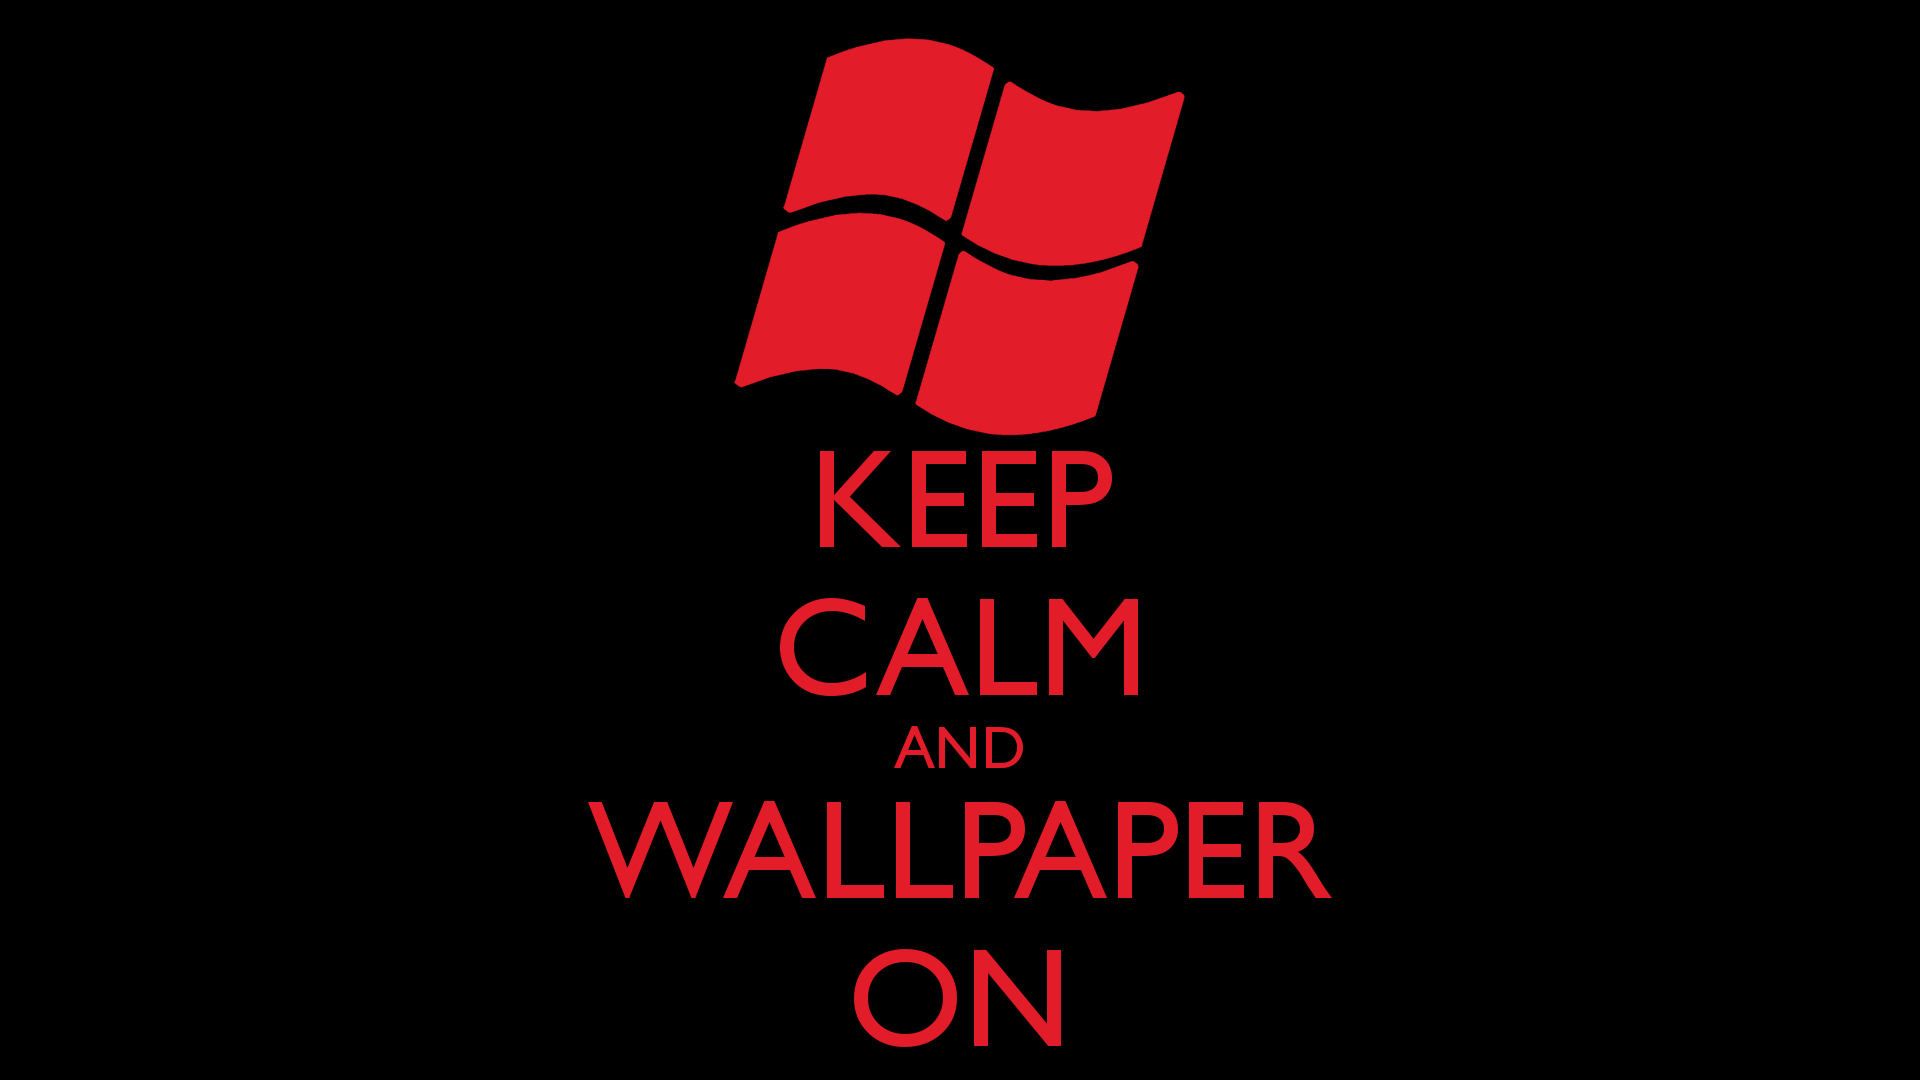 keep calm quotes wallpaper quotesgram